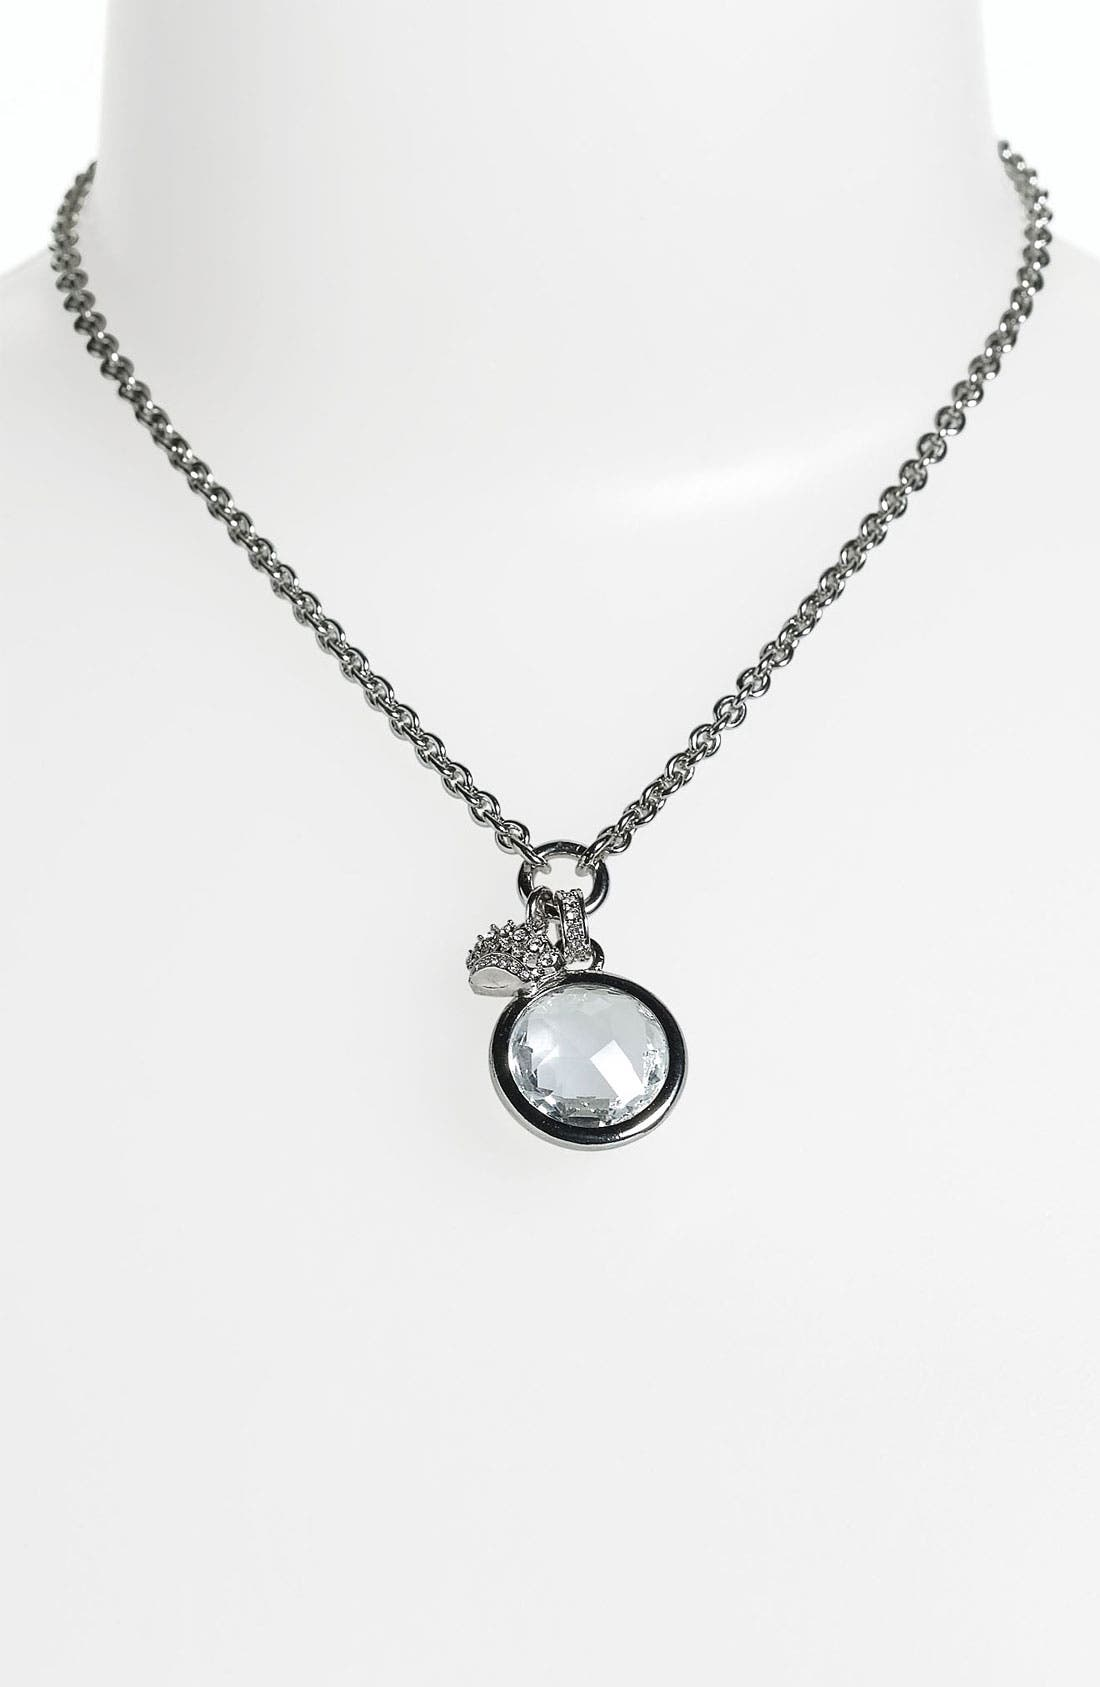 Main Image - Juicy Couture Pendant Necklace